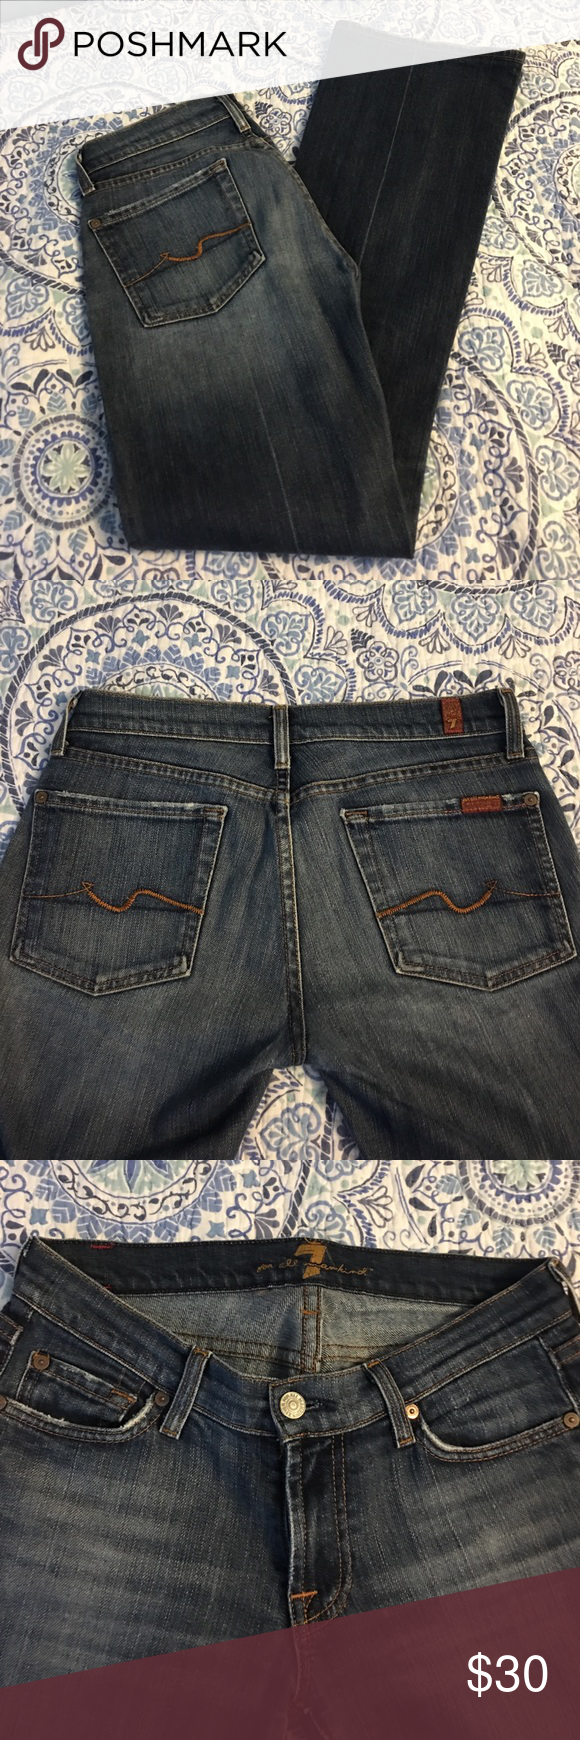 """Seven for all mankind jeans size 27 Great condition. Cute """"wave"""" design on back pockets. Make an offer. These fit amazing and enhance your booty!!!! I have pointed at the little wear at button hole- still fastens perfectly and should not be an issue- just full disclosure. Very soft and figure flattering!!! Seven7 Jeans Boot Cut"""